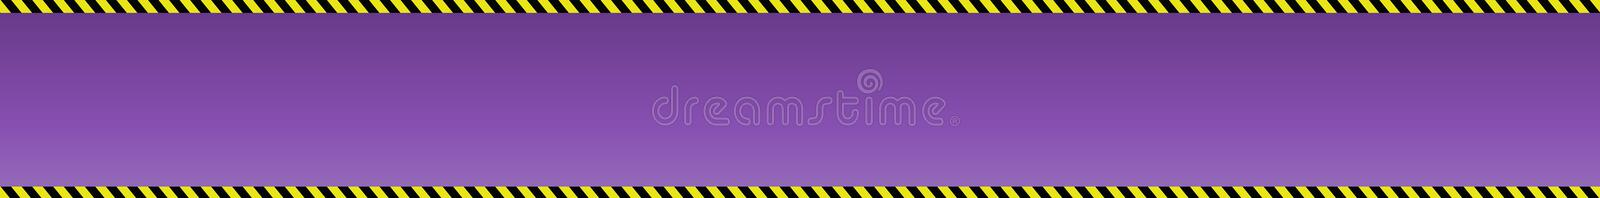 Purple  background with banner with borders from black and yellow construction signal tape royalty free stock image